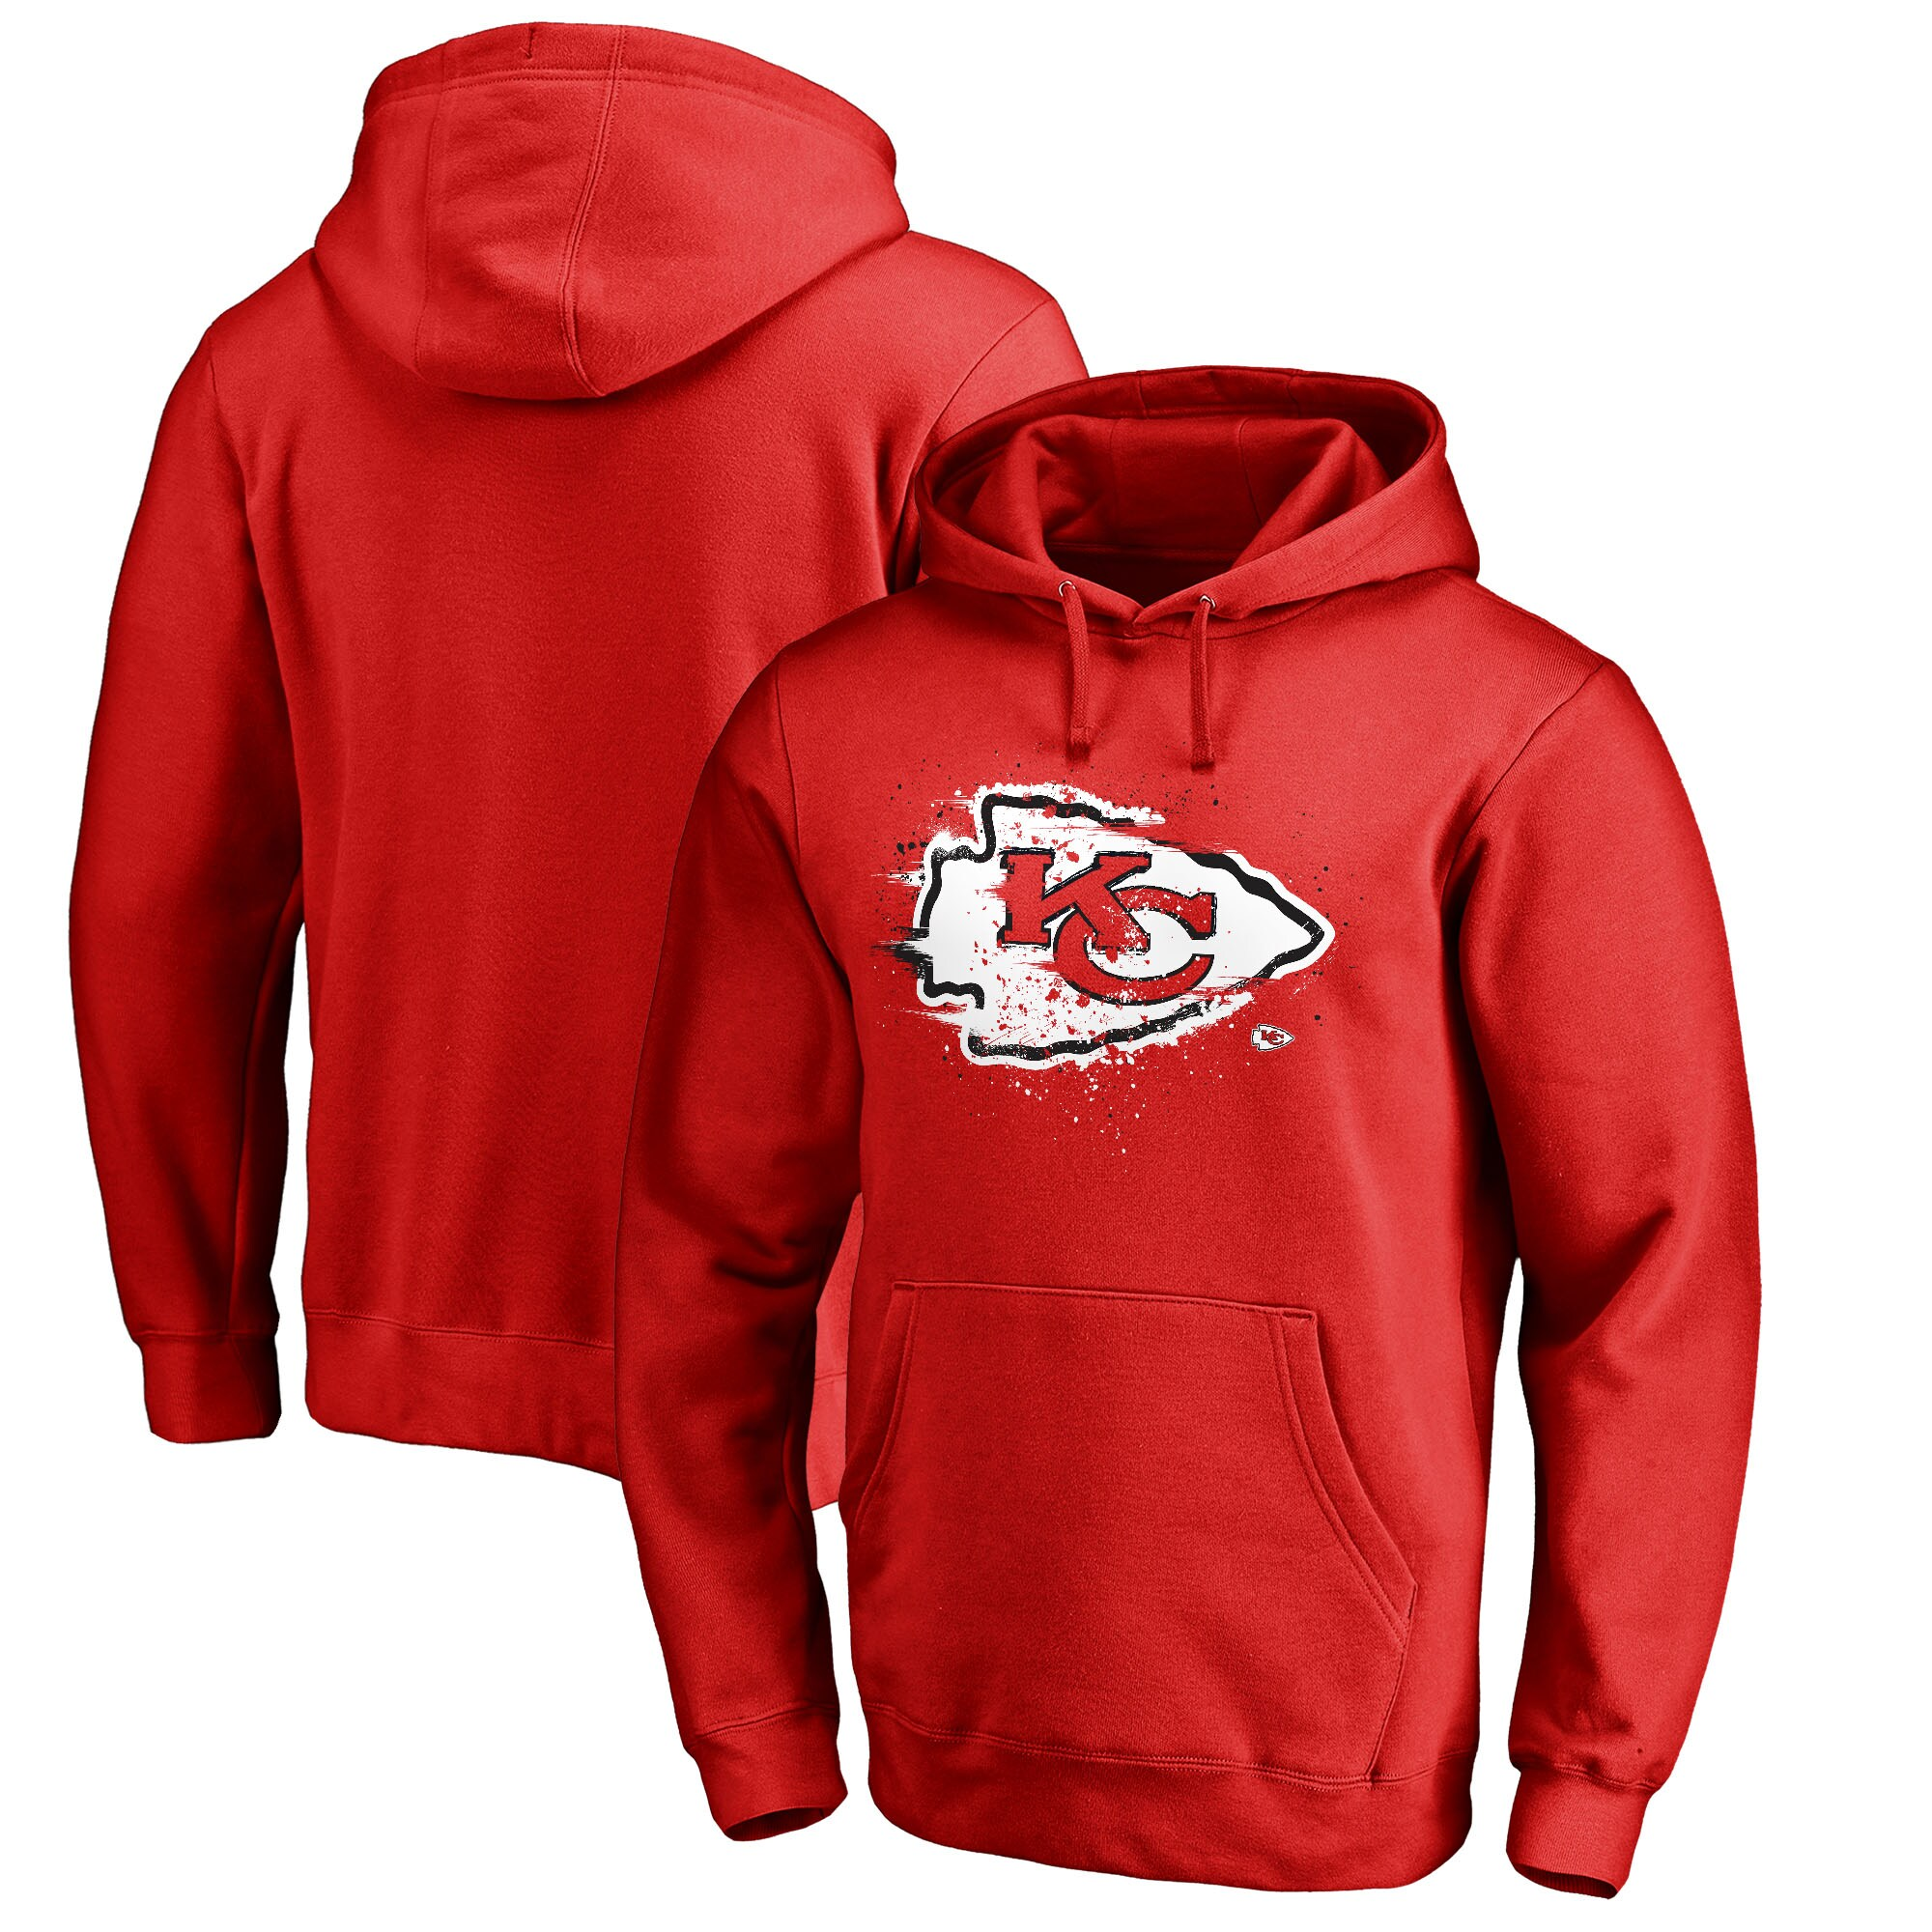 Kansas City Chiefs NFL Pro Line by Fanatics Branded Splatter Logo Pullover Hoodie - Red